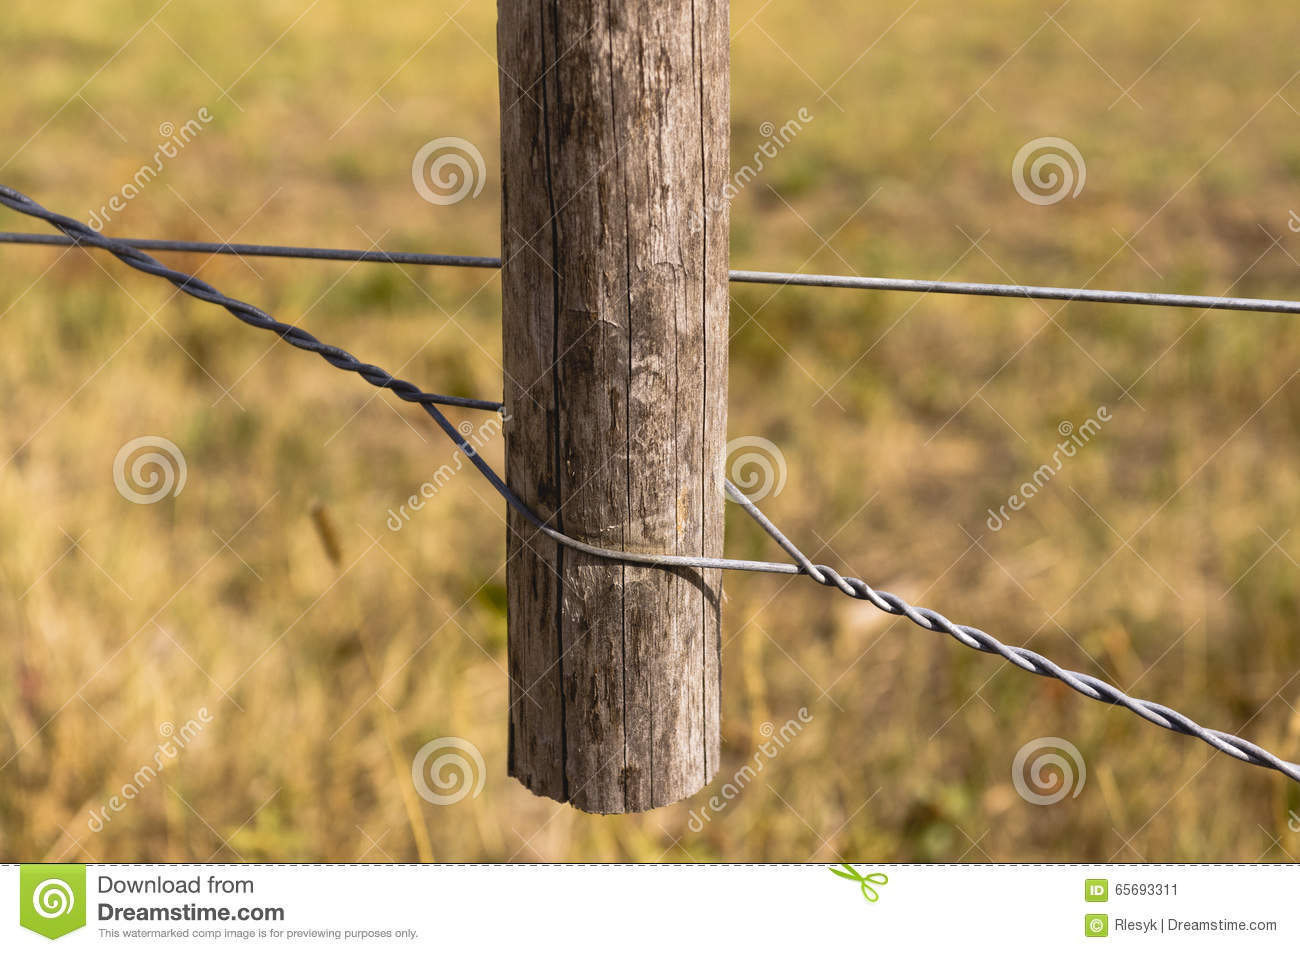 Spanish Windlass Style Fence Wire Tightener Stock Image - Image of ...